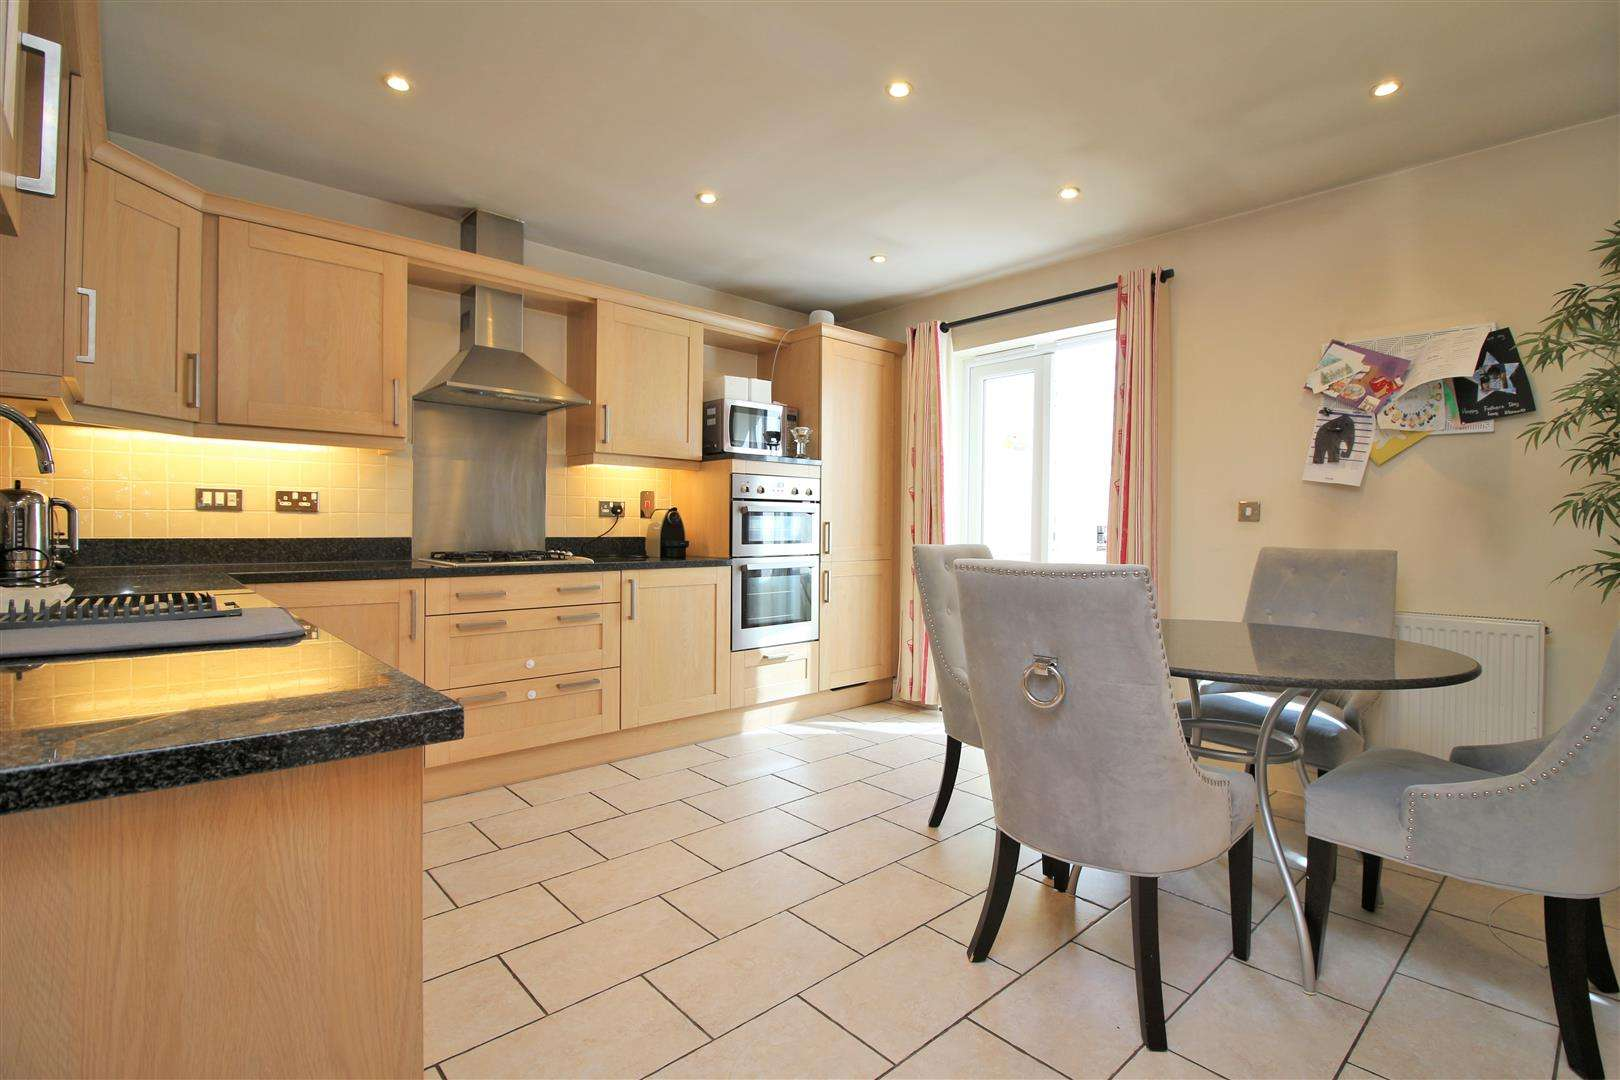 4 bed to rent in Bushey Heath - (Property Image 4)